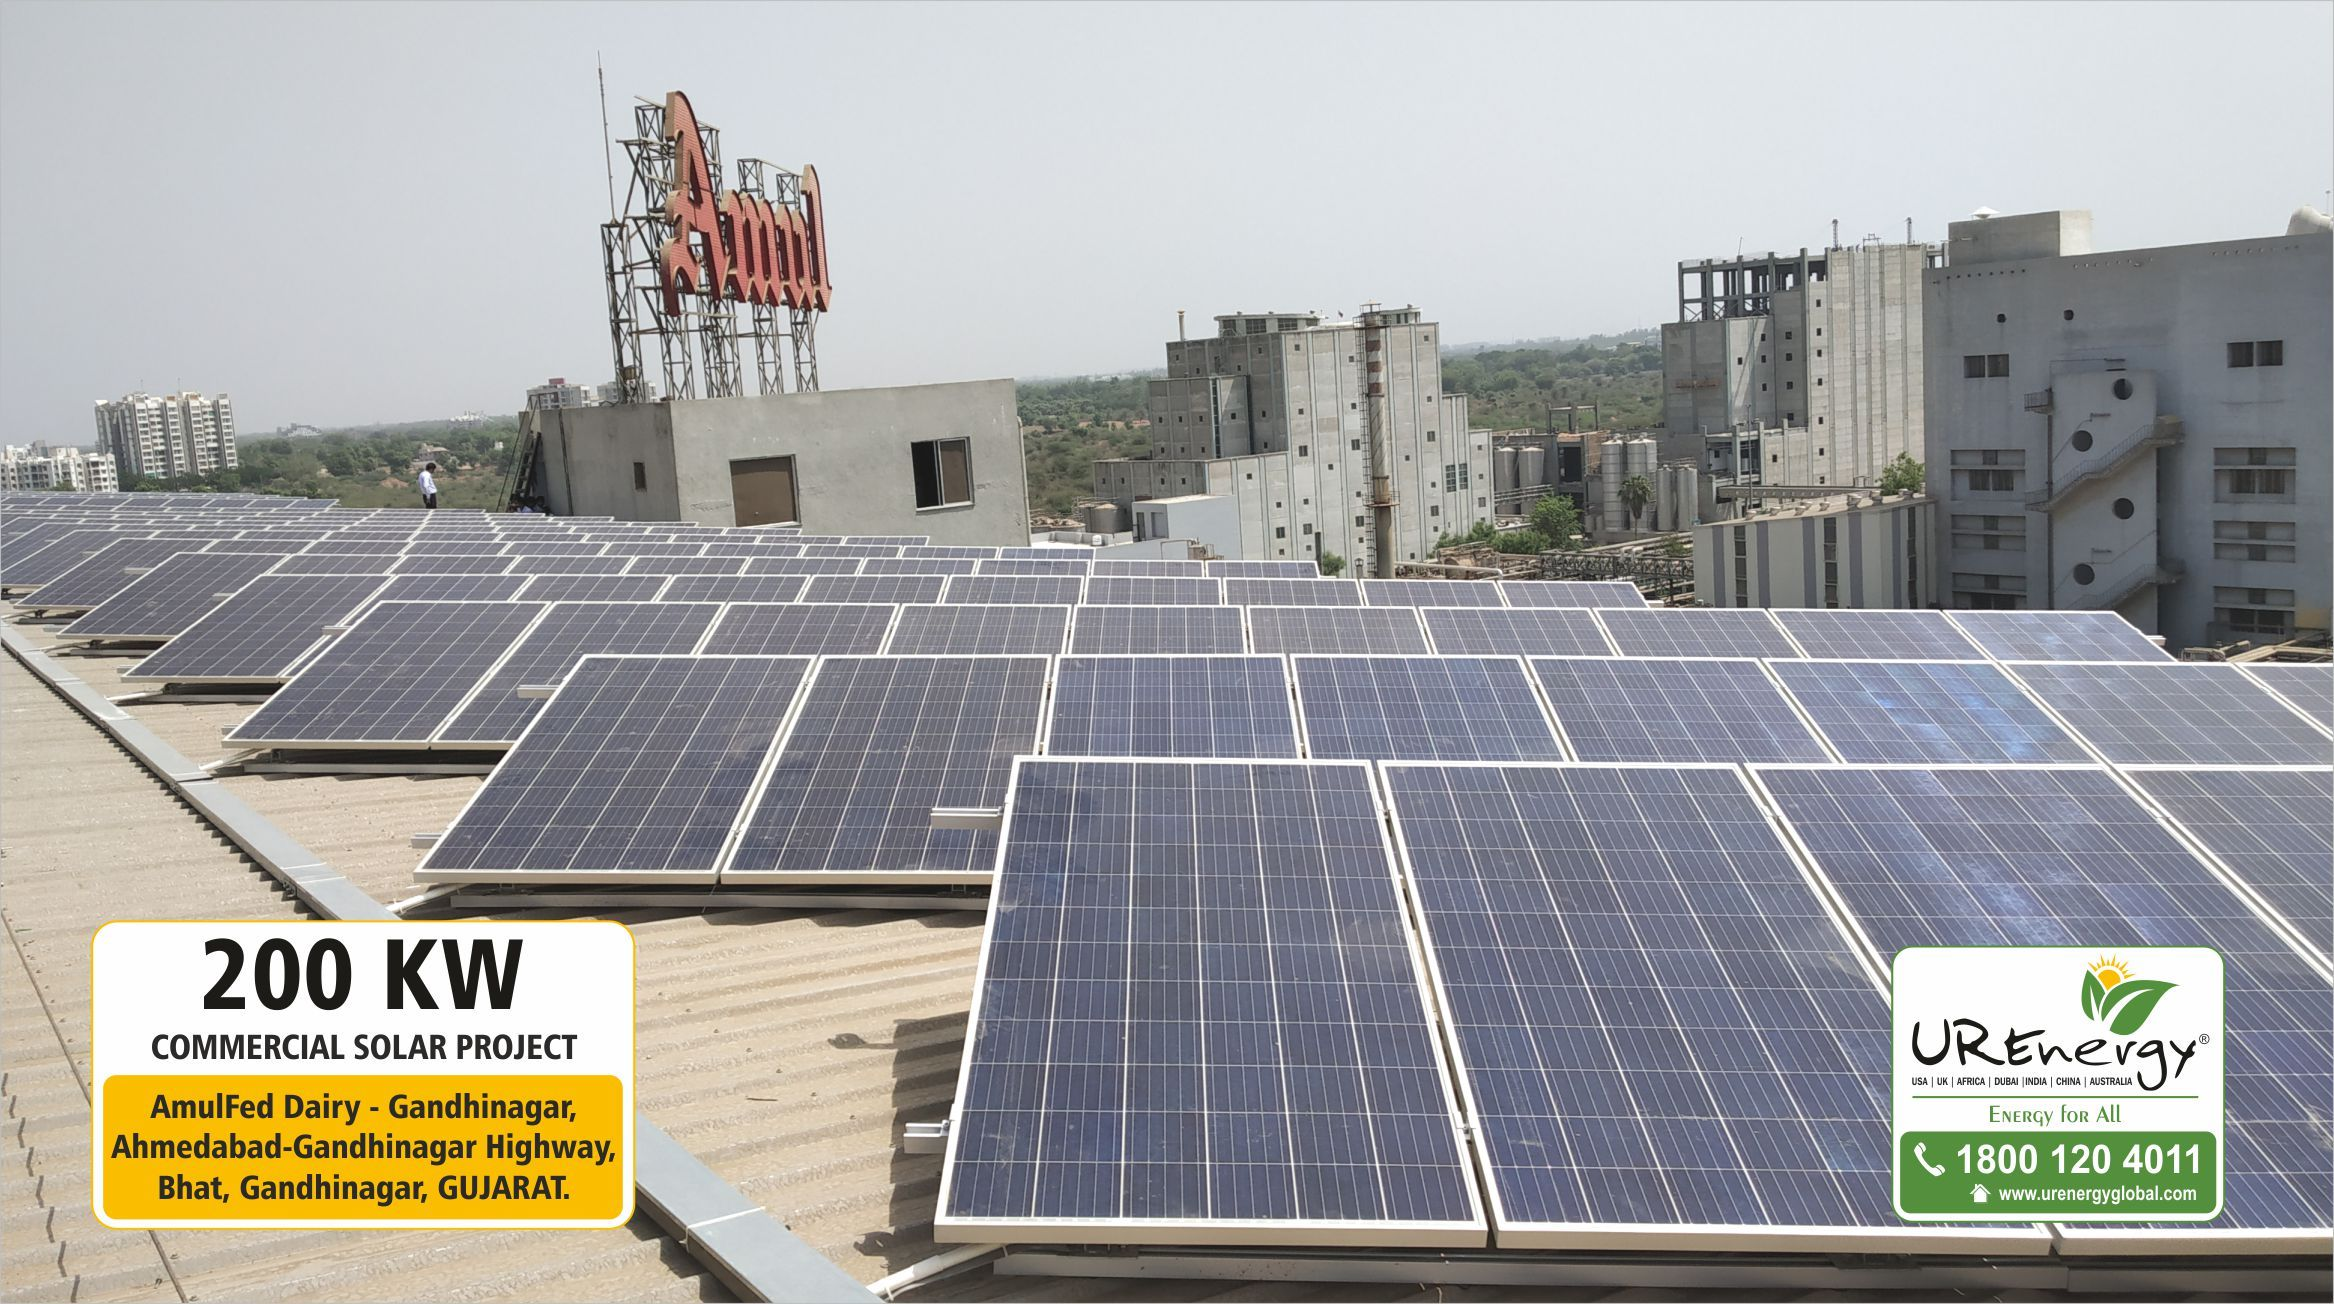 6 4 Kw Residential Rooftop Solar Panel System Installed By U R Energy Team At Ahmedabad Gujarat India V Roof Solar Panel Solar Panels Solar